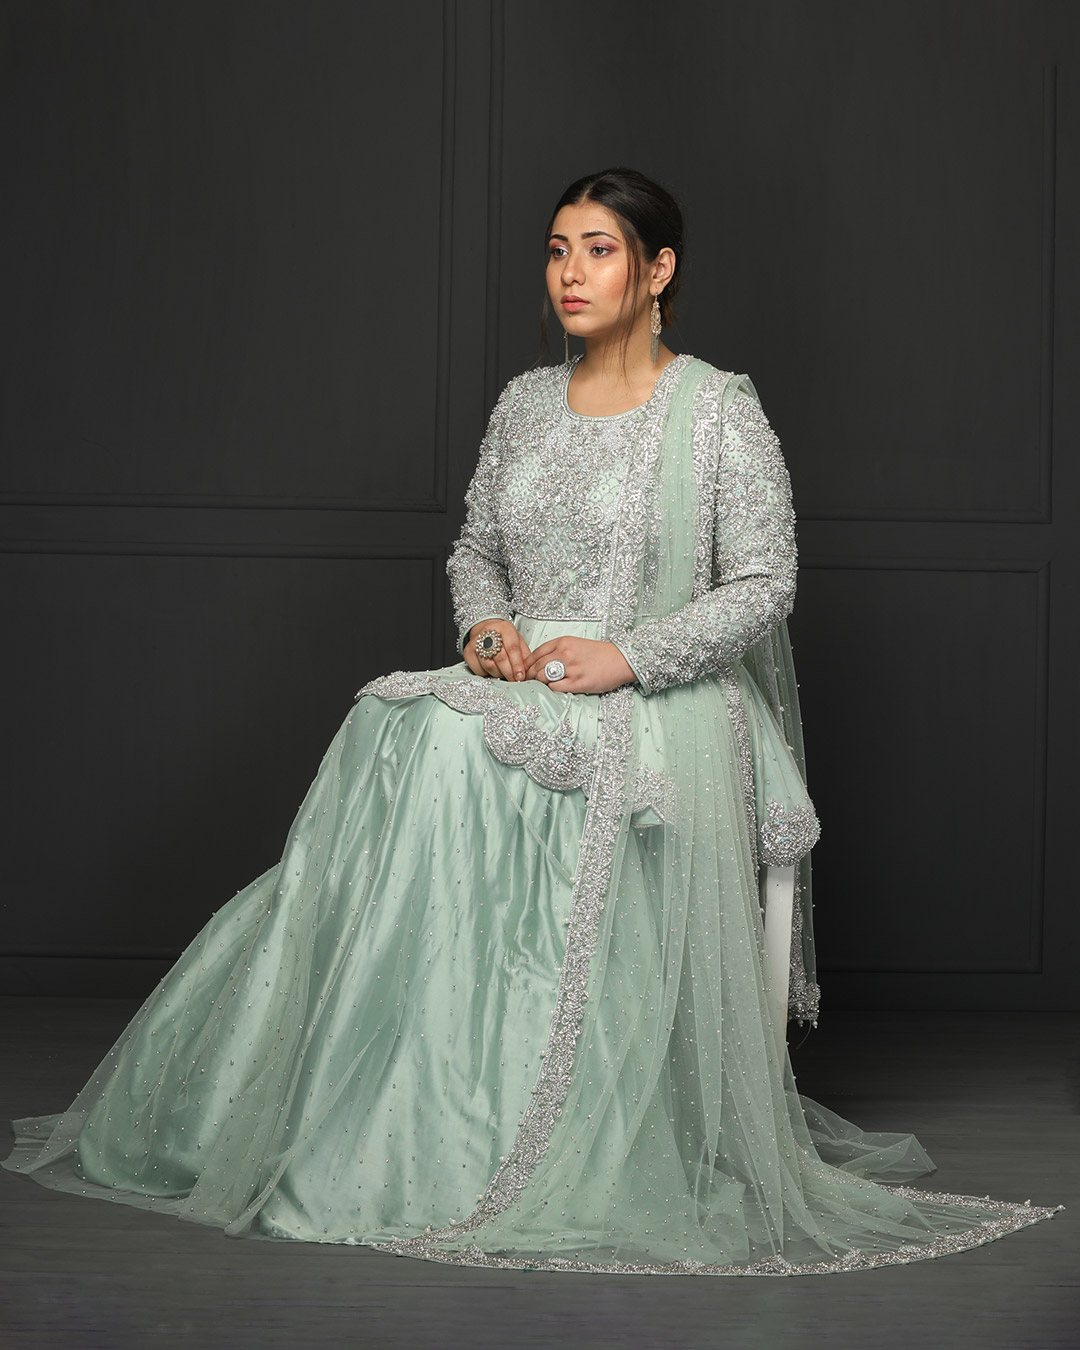 Fareenas' 'Bridal' Collection Is Just What Glitter At Wedding Should Look Like